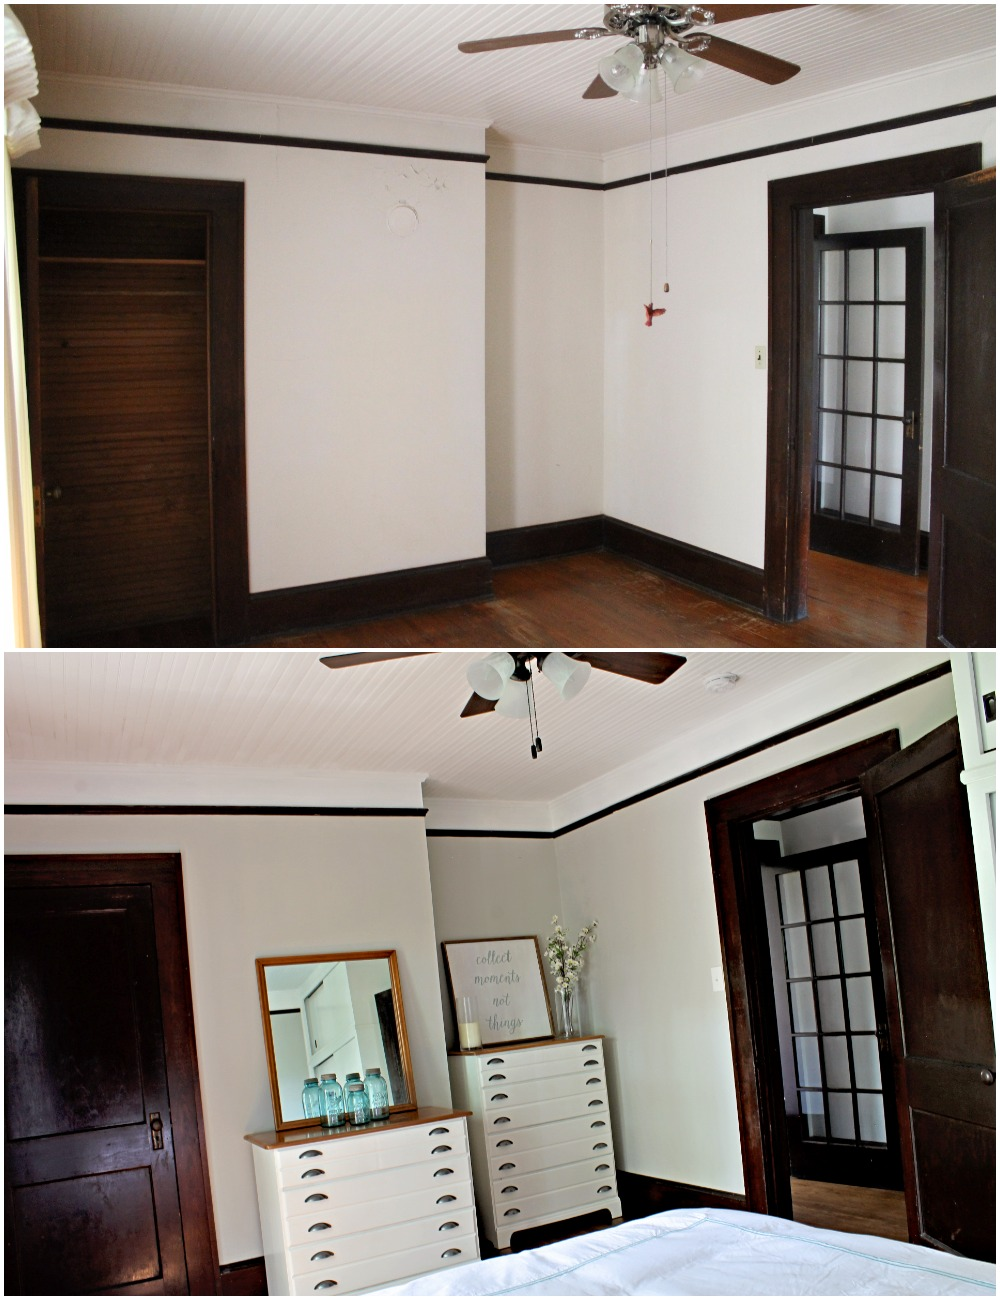 House Flipping Before and Afters - Bedroom Staging Ideas, Wood Trim Paint Colors - Sherwin Williams Repose Gray 11